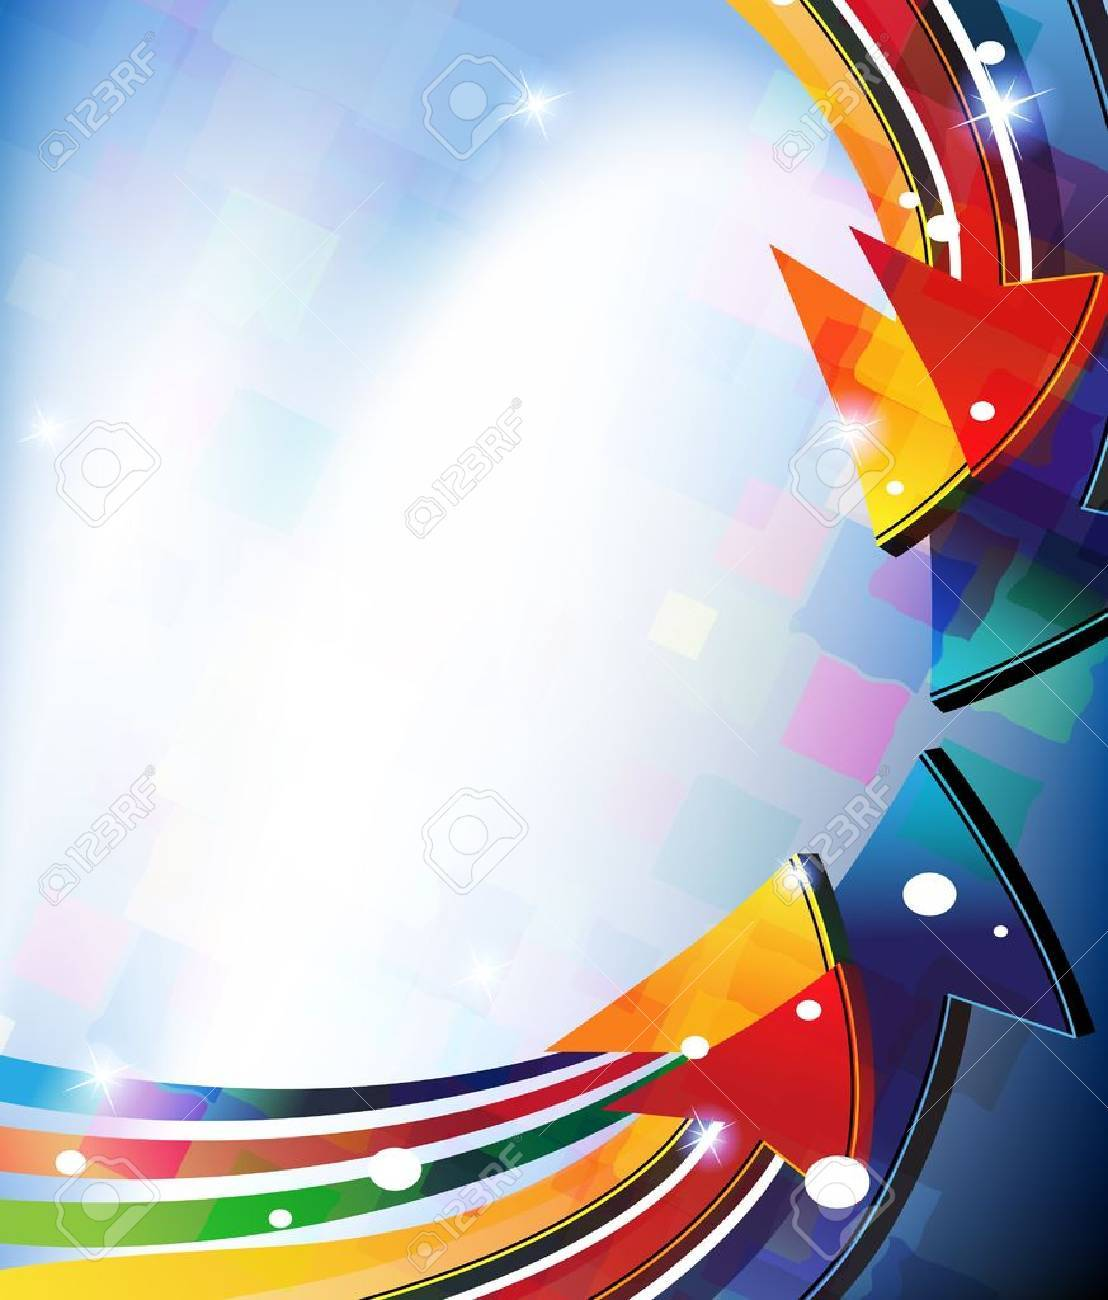 colored arrows on abstract background - 16704375